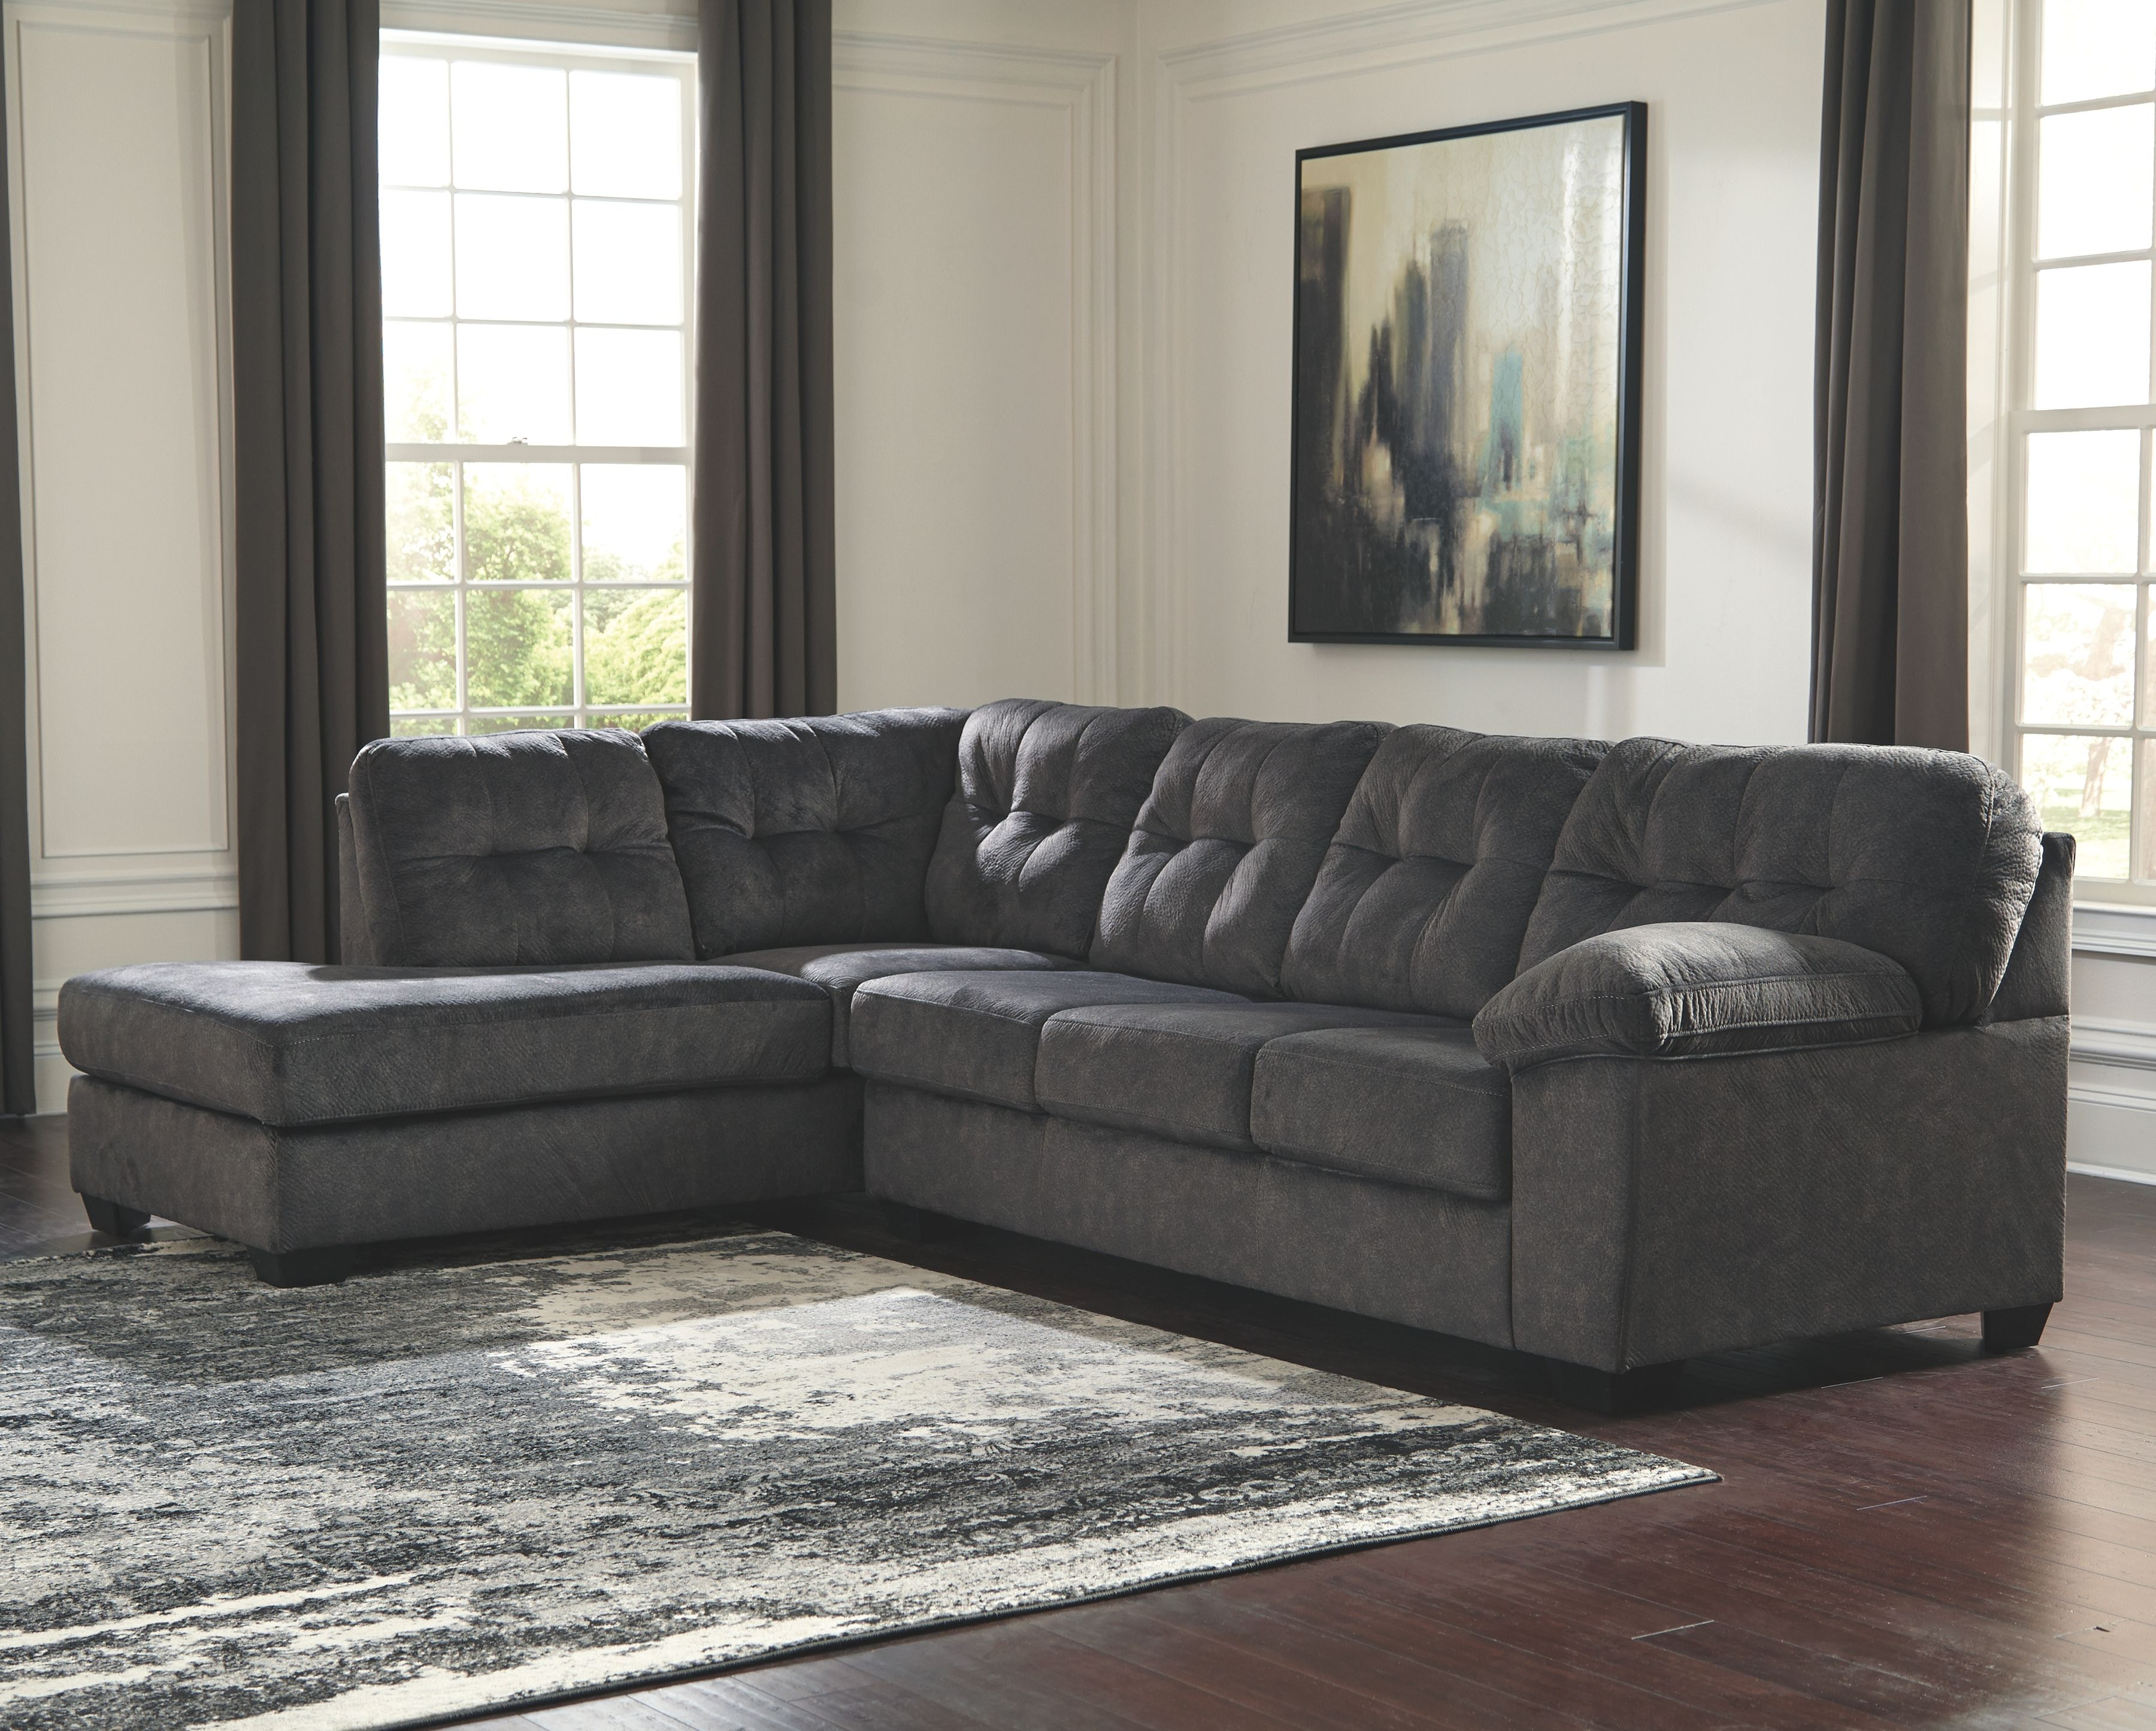 Signature Design By Ashley Living Room LAF Corner Chaise 7050916 At Sofas  Unlimited